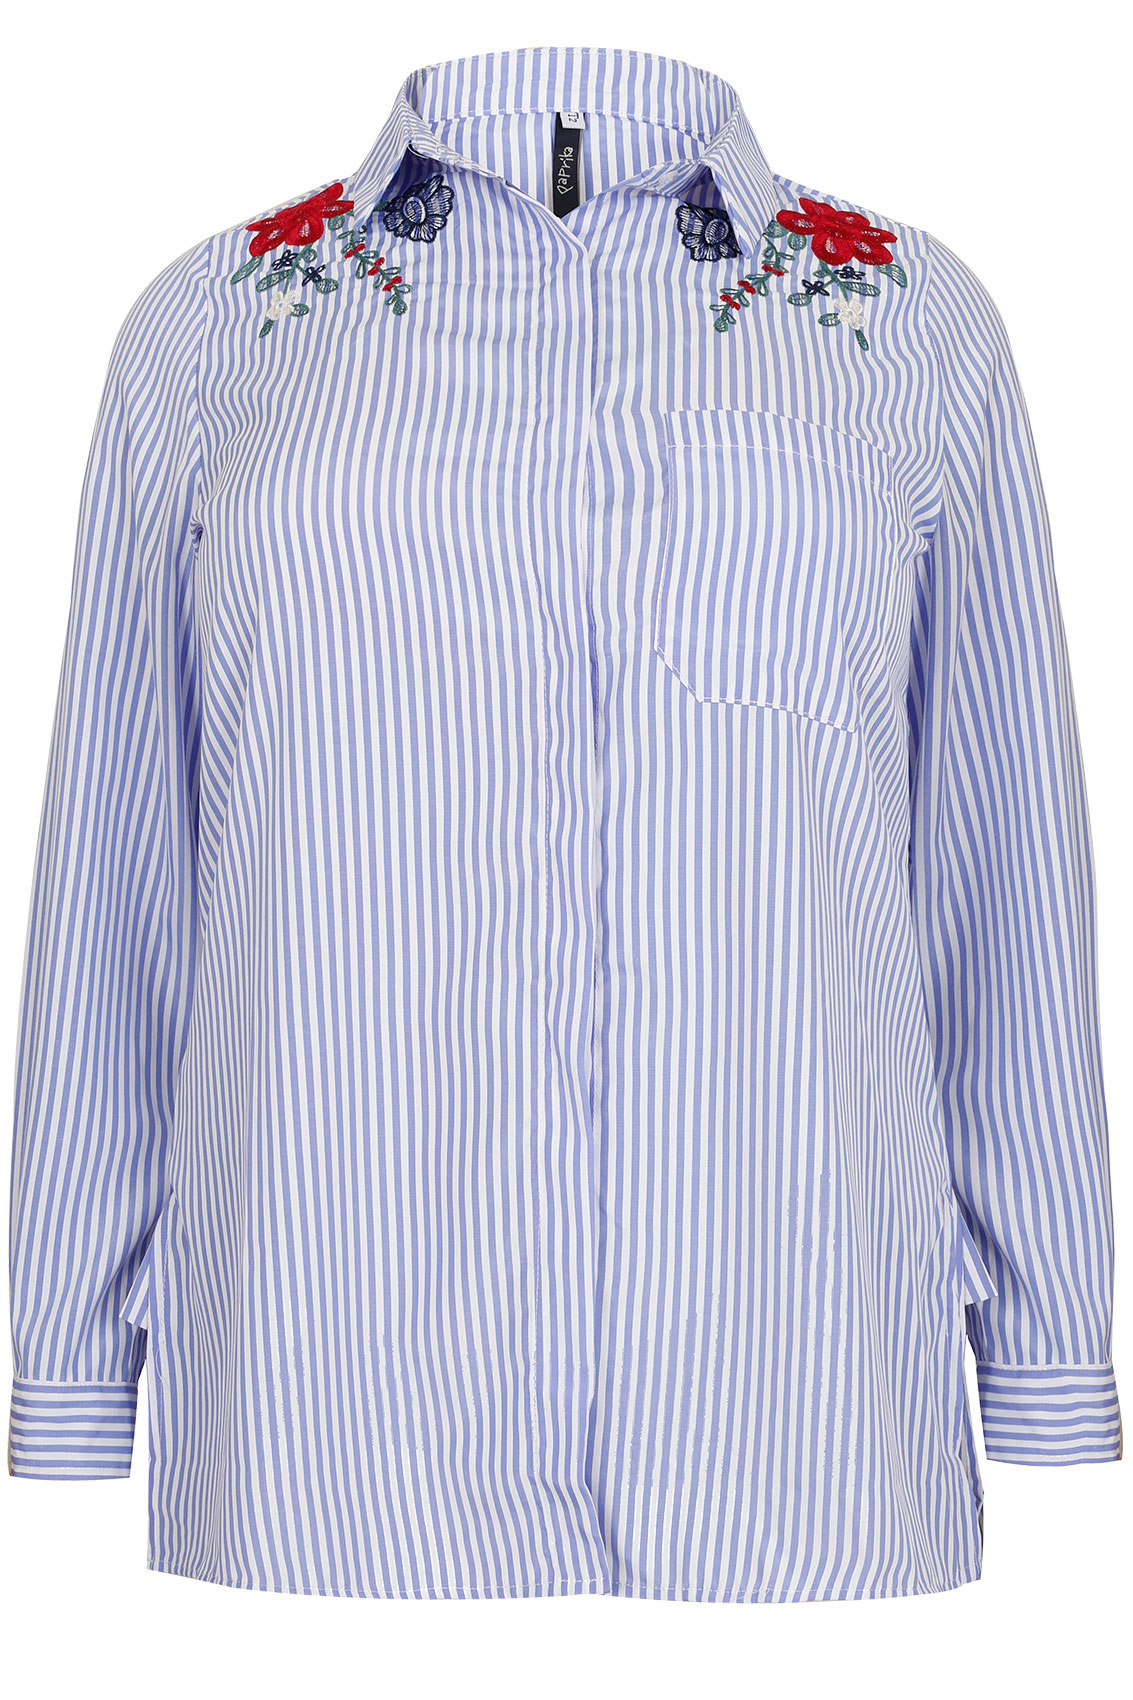 PAPRIKA Blue & White Stripe Shirt With Floral Embroidery plus size ...